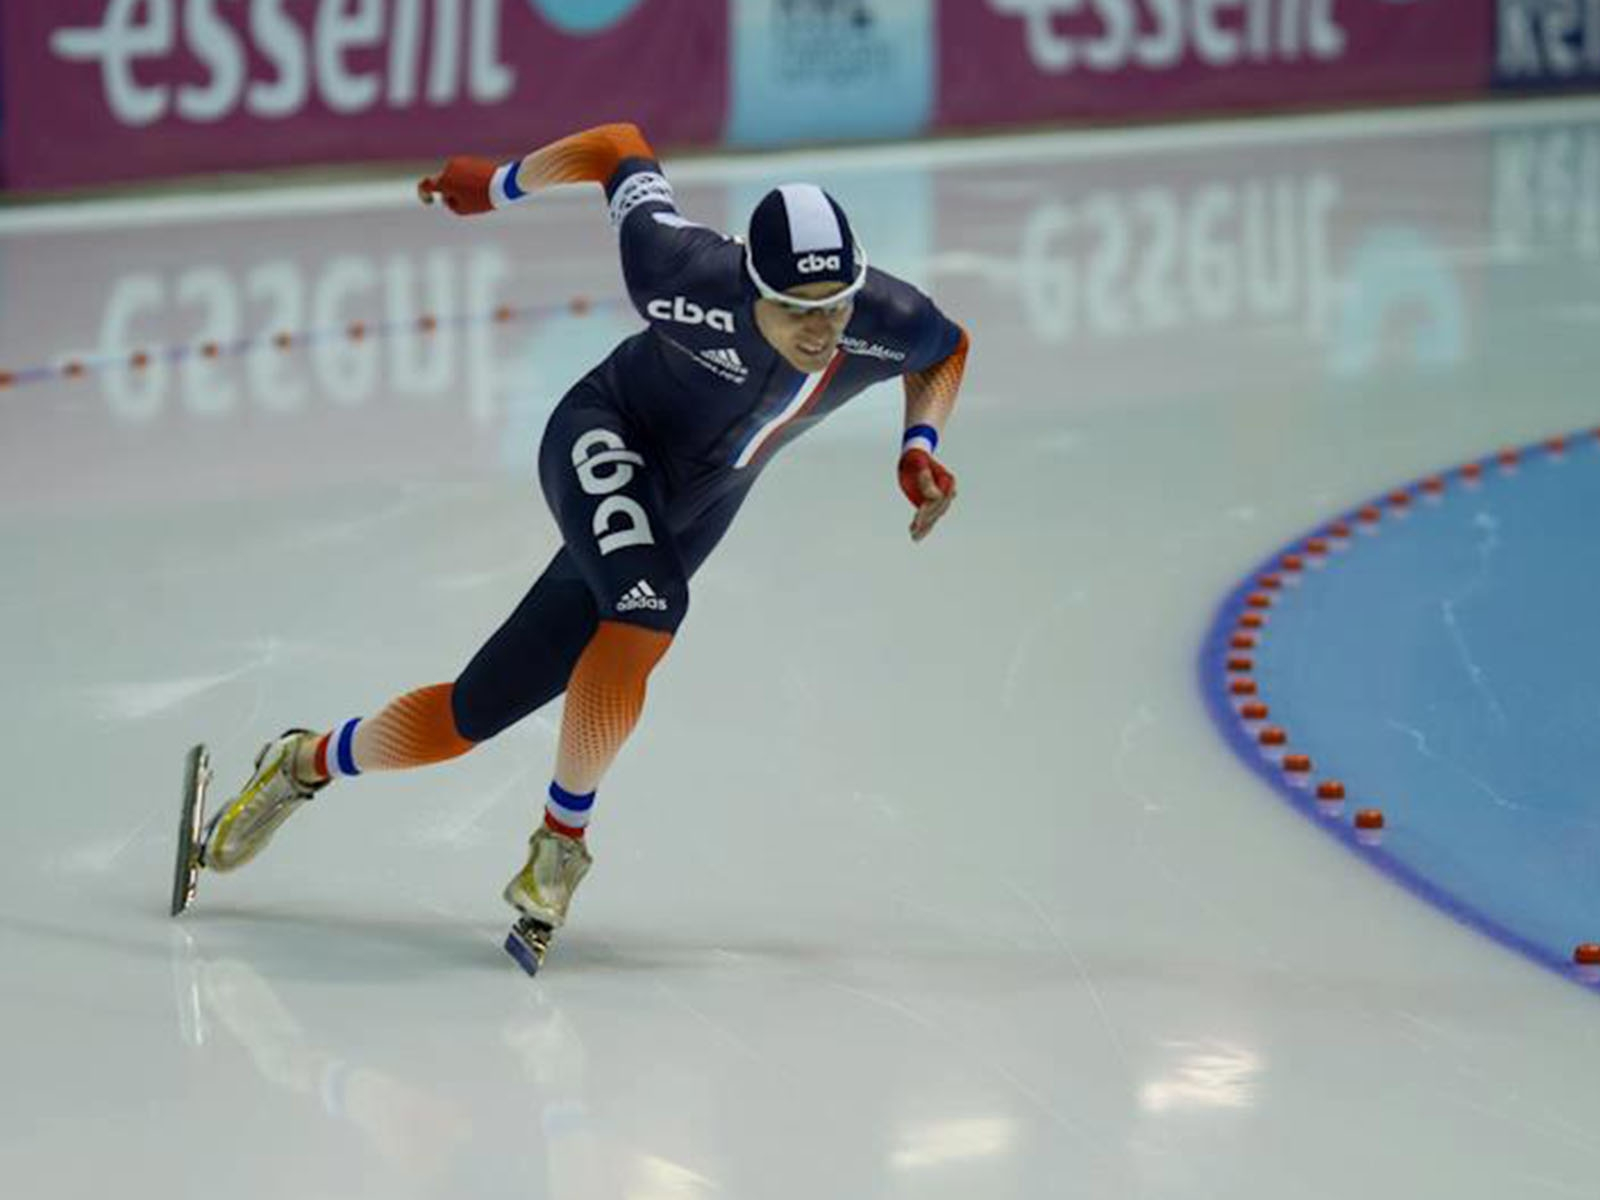 Short track contest with Alexis Contin